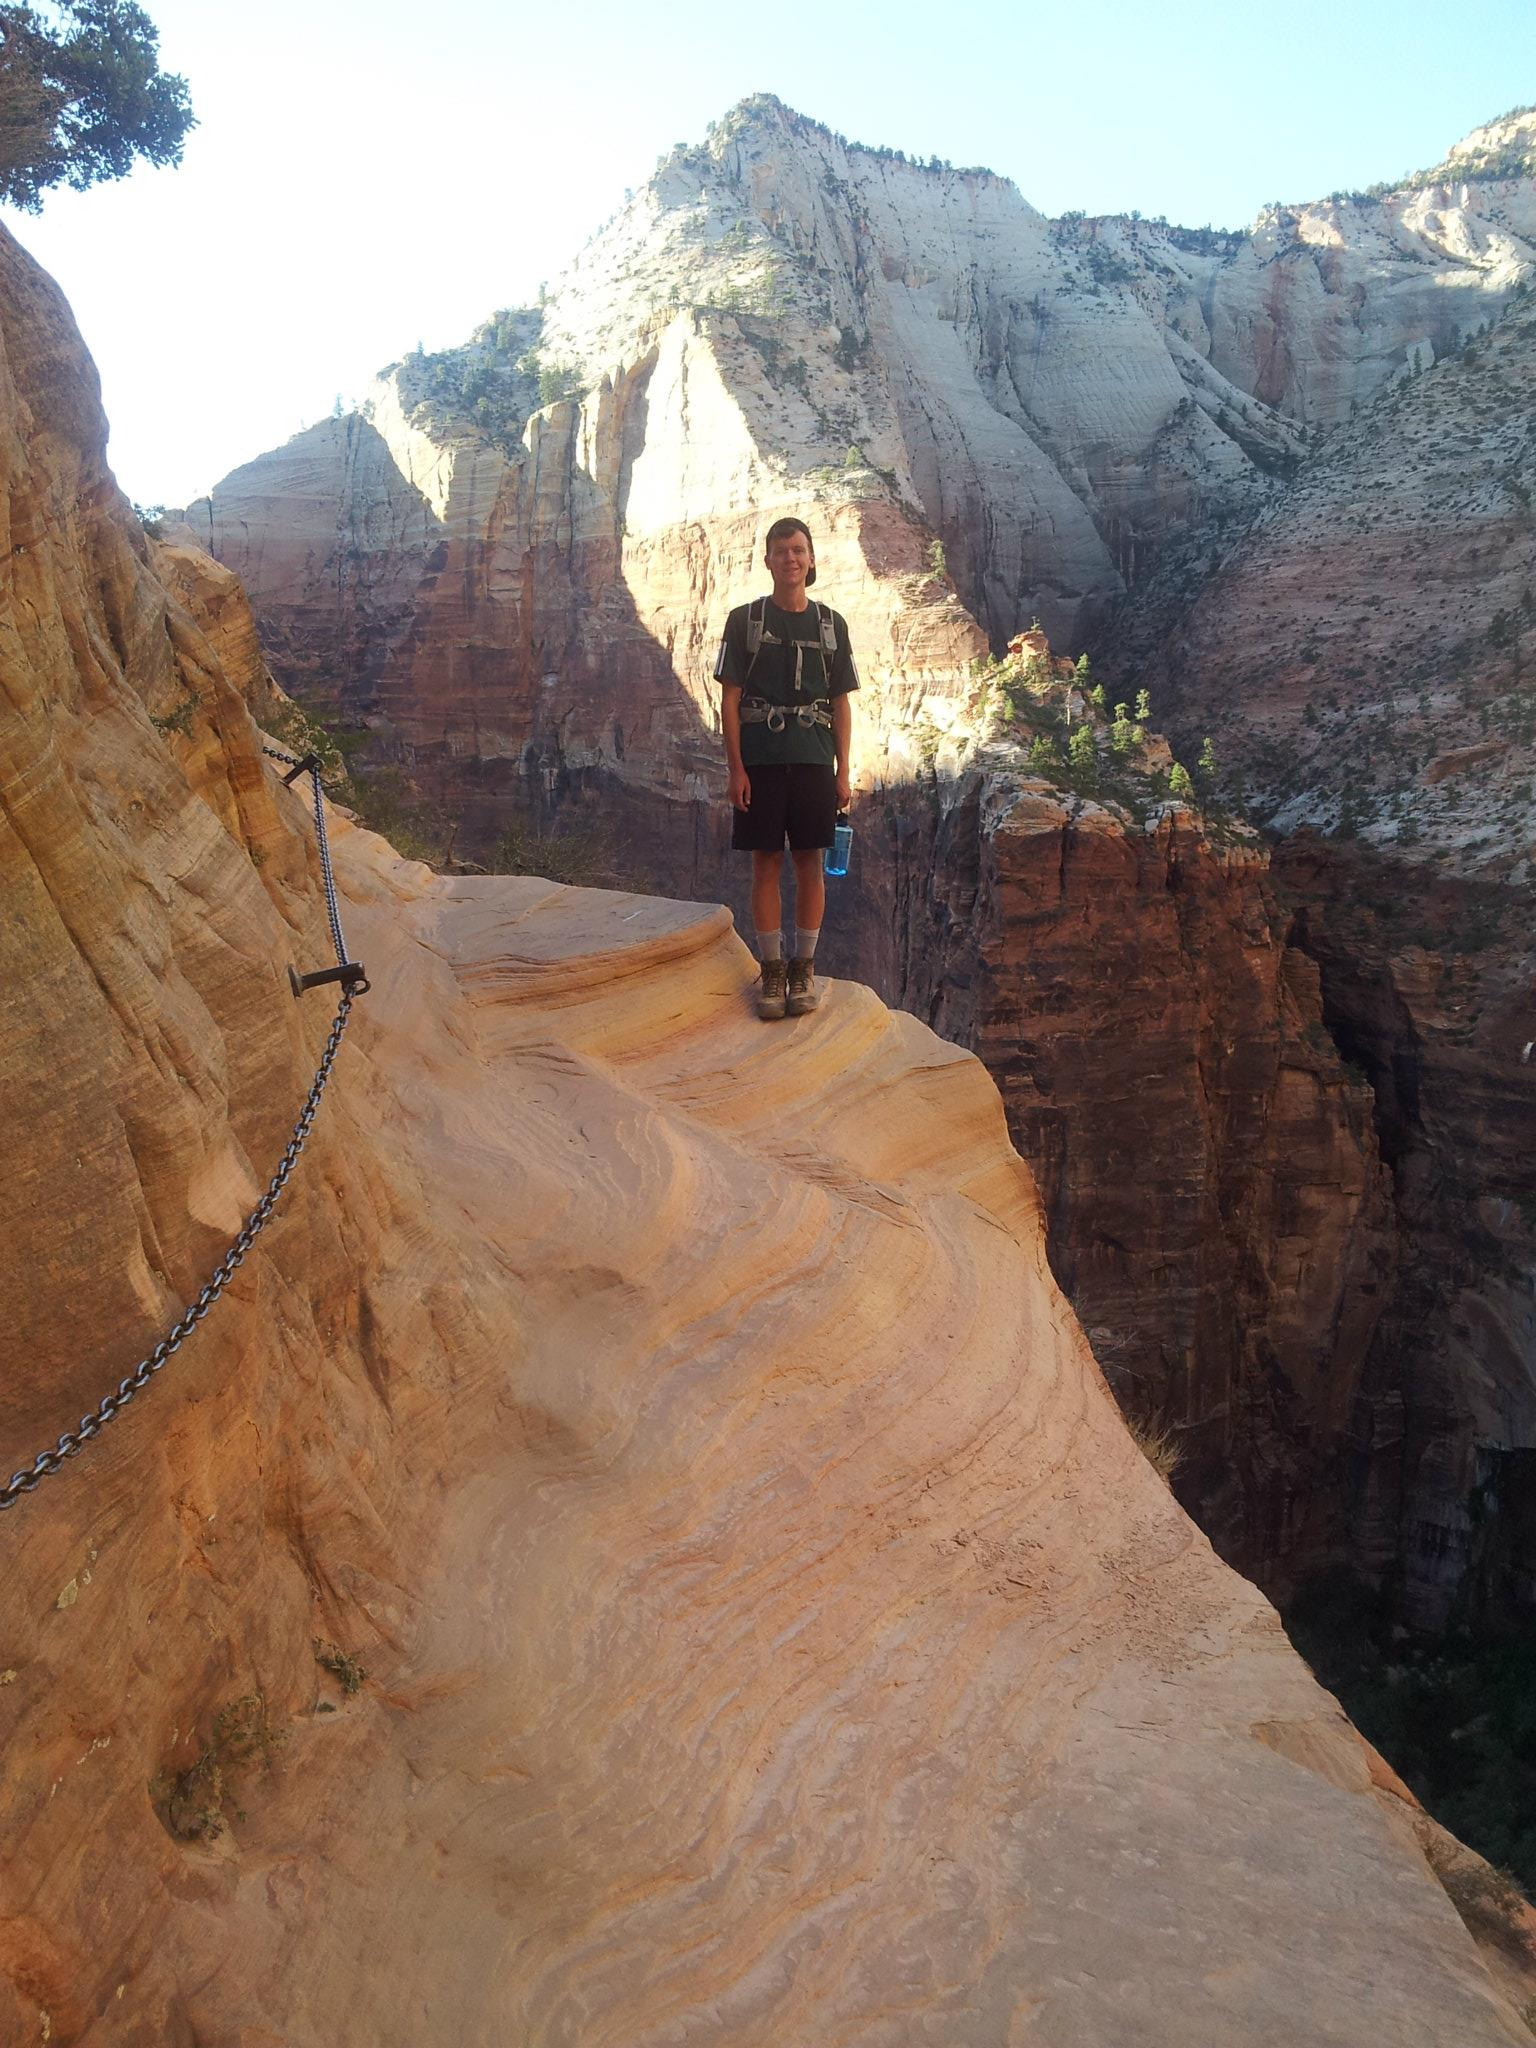 Clark standing precariously close to the ledge... not for those scared of heights!